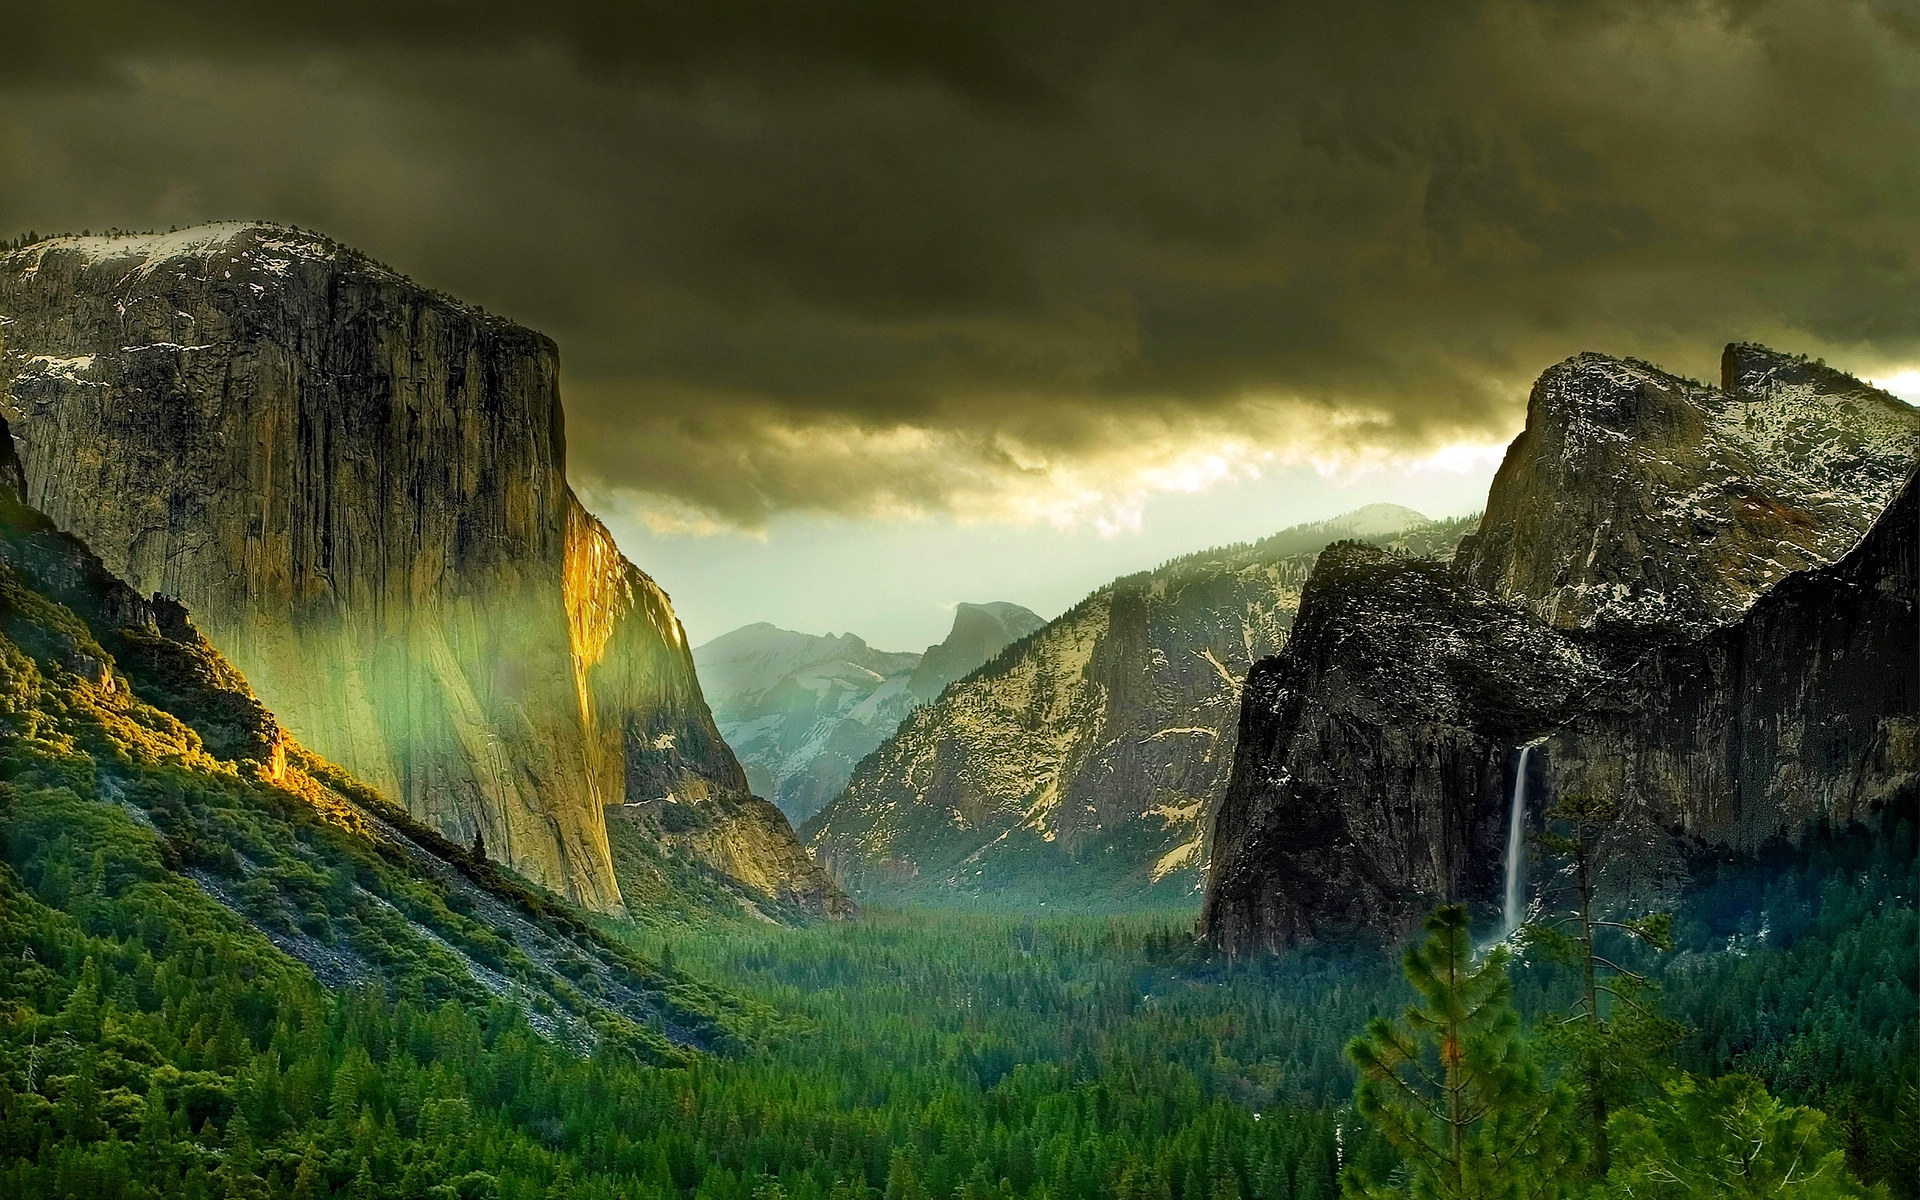 31 2015 By Stephen Comments Off on Yosemite National Park Wallpapers 1920x1200